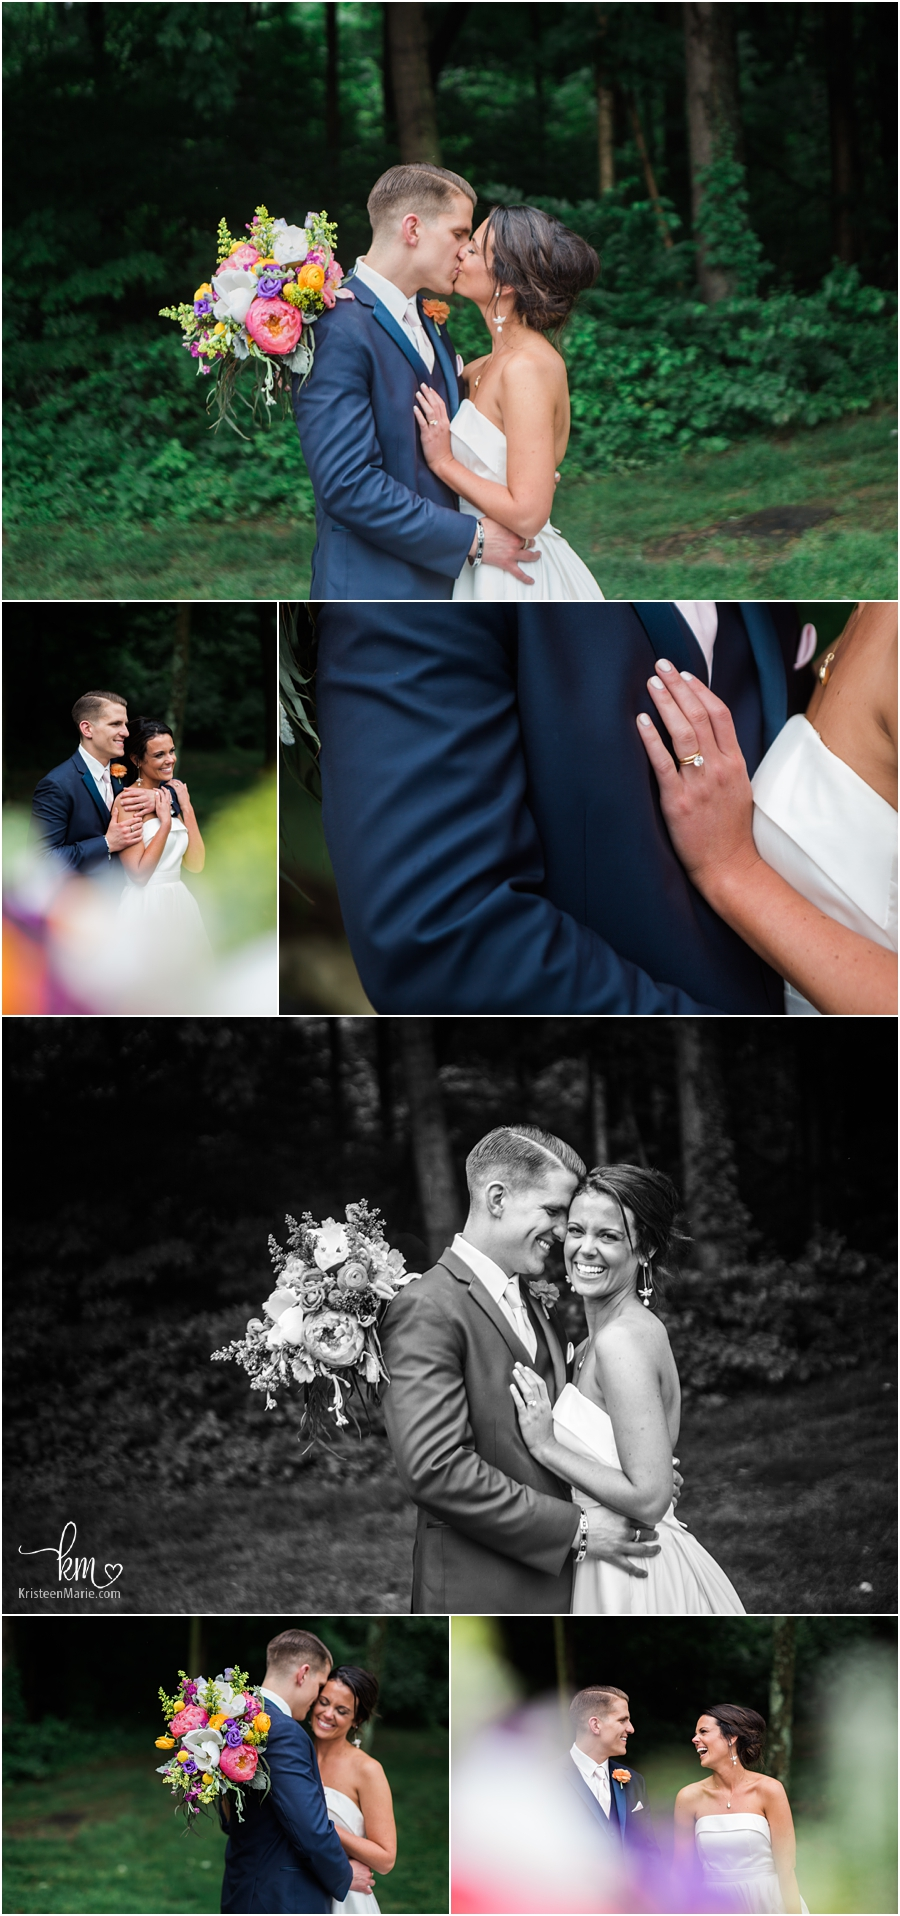 Indianapolis wedding photography at Indianapolis Yatch Club